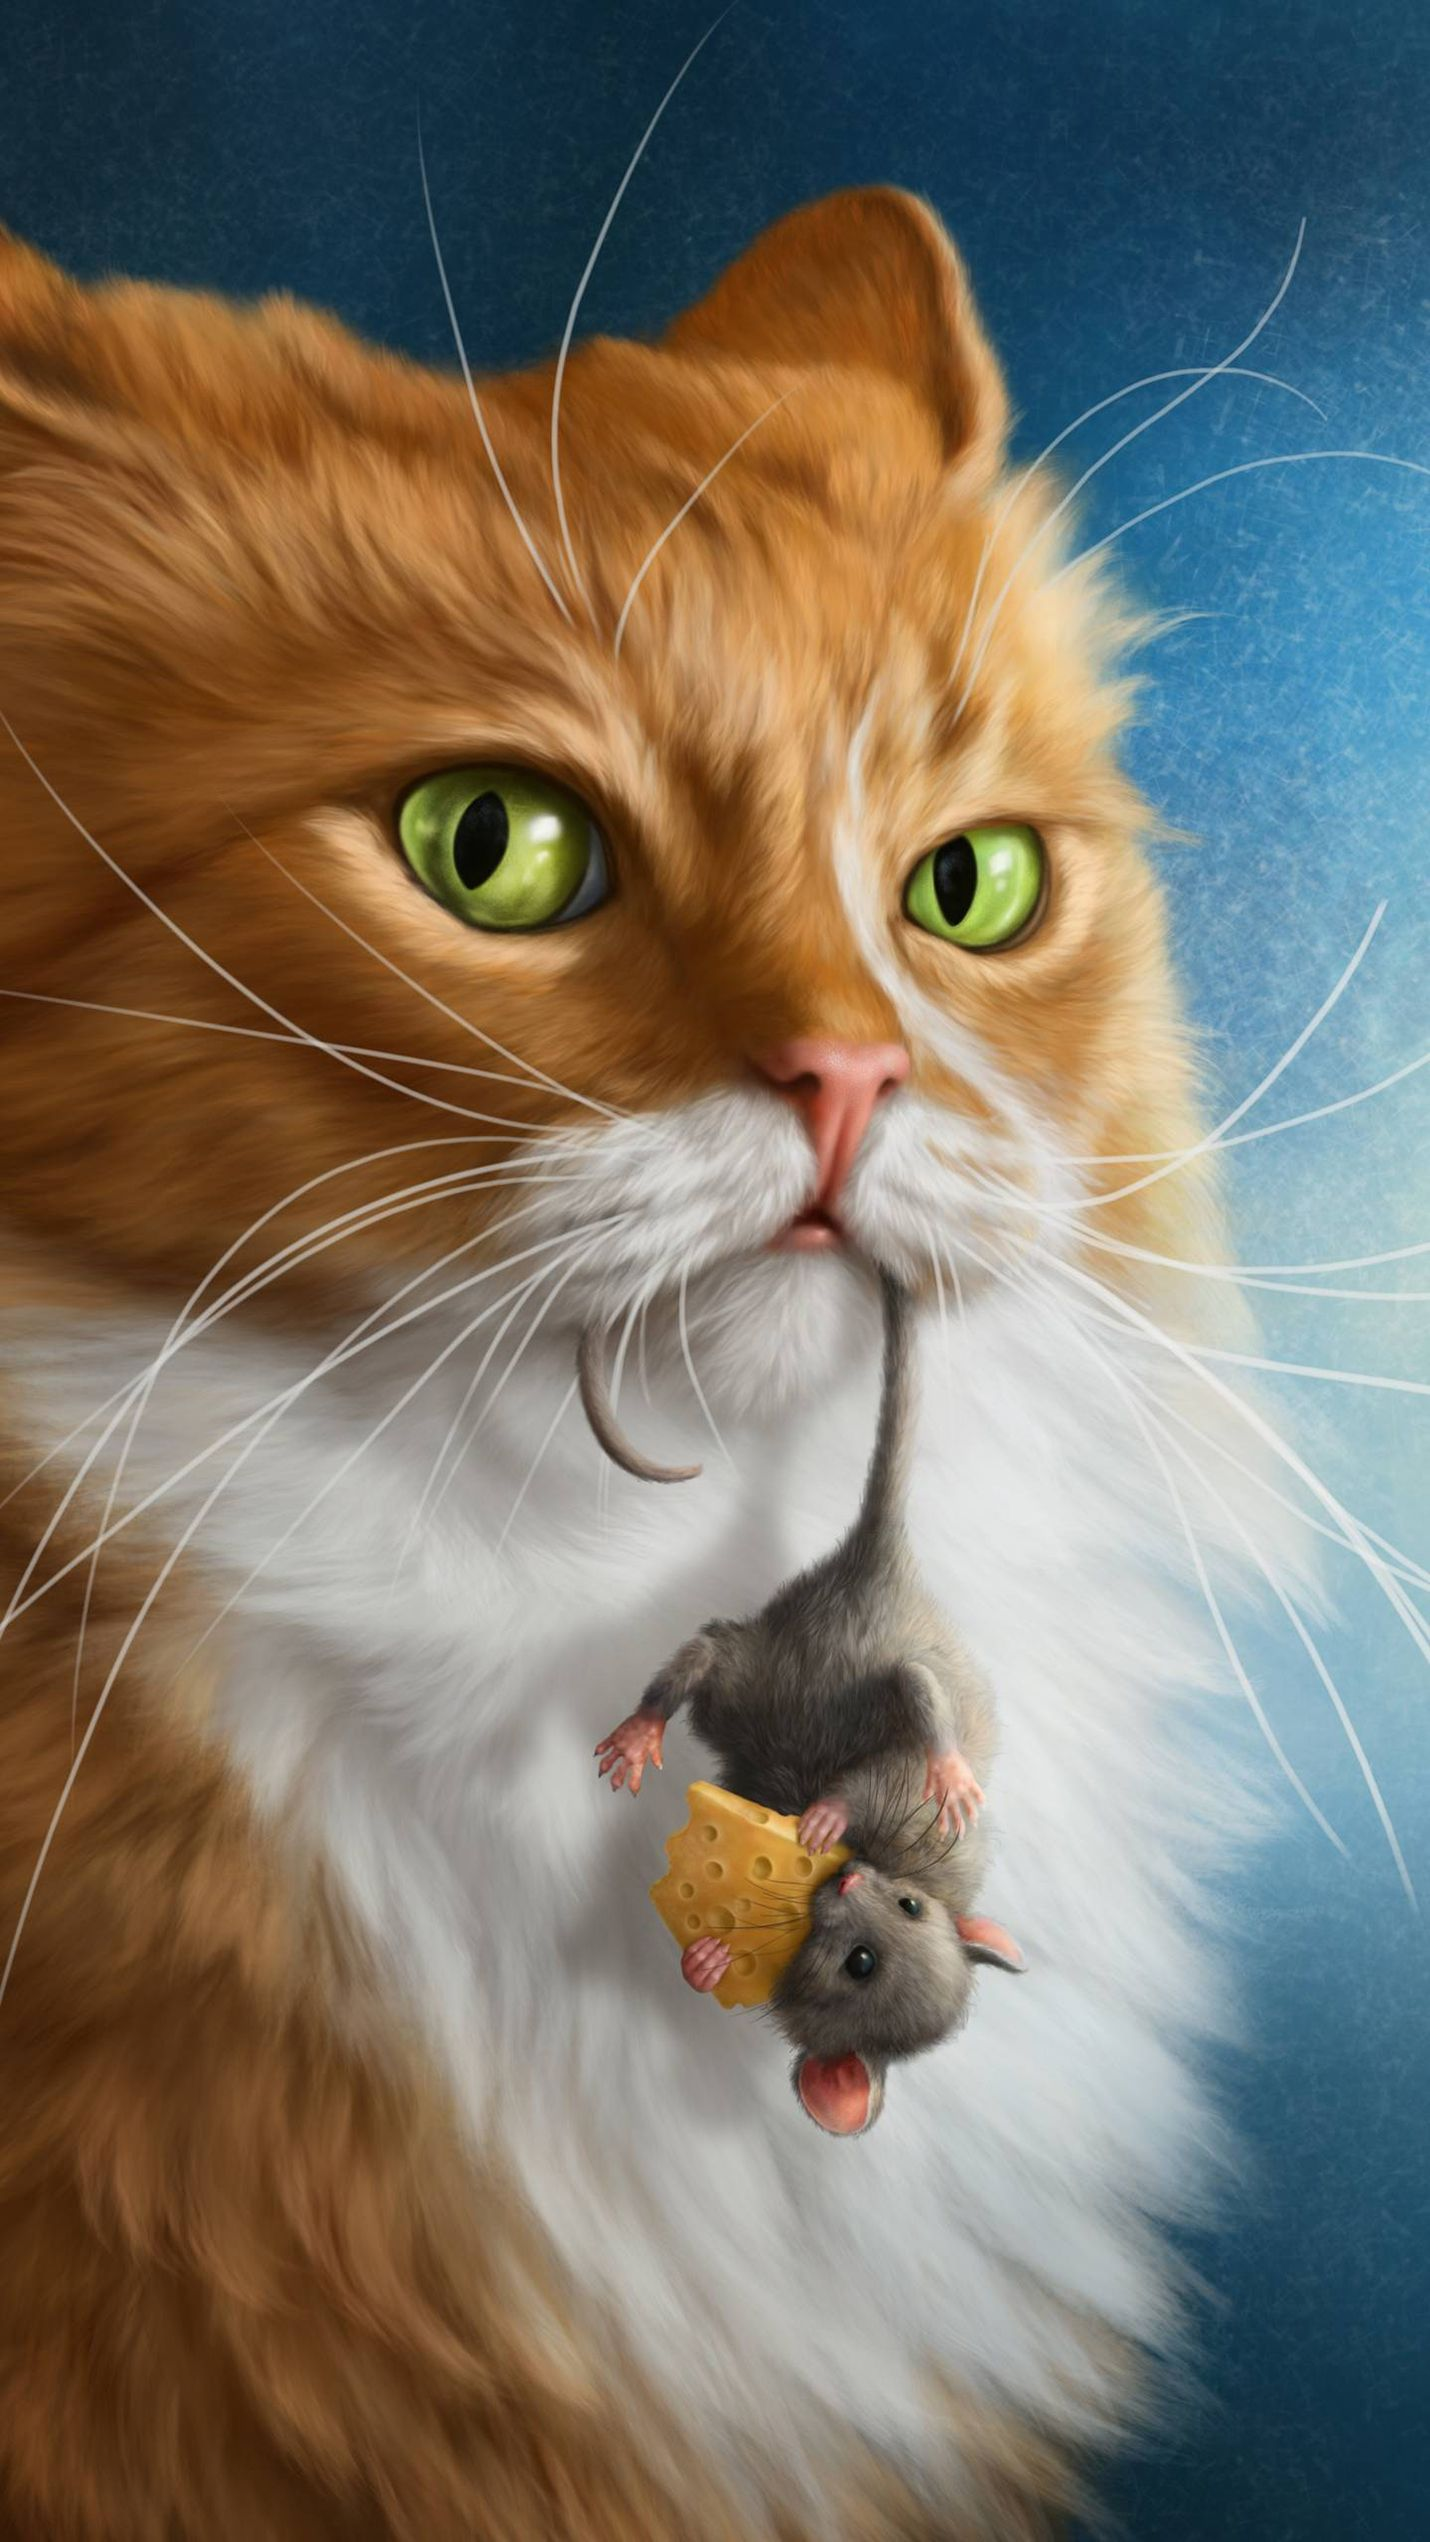 Awesome Cat With Mouse Wallpaper Download Hd In Link Cats Illustration Cat Art Cute Animal Drawings